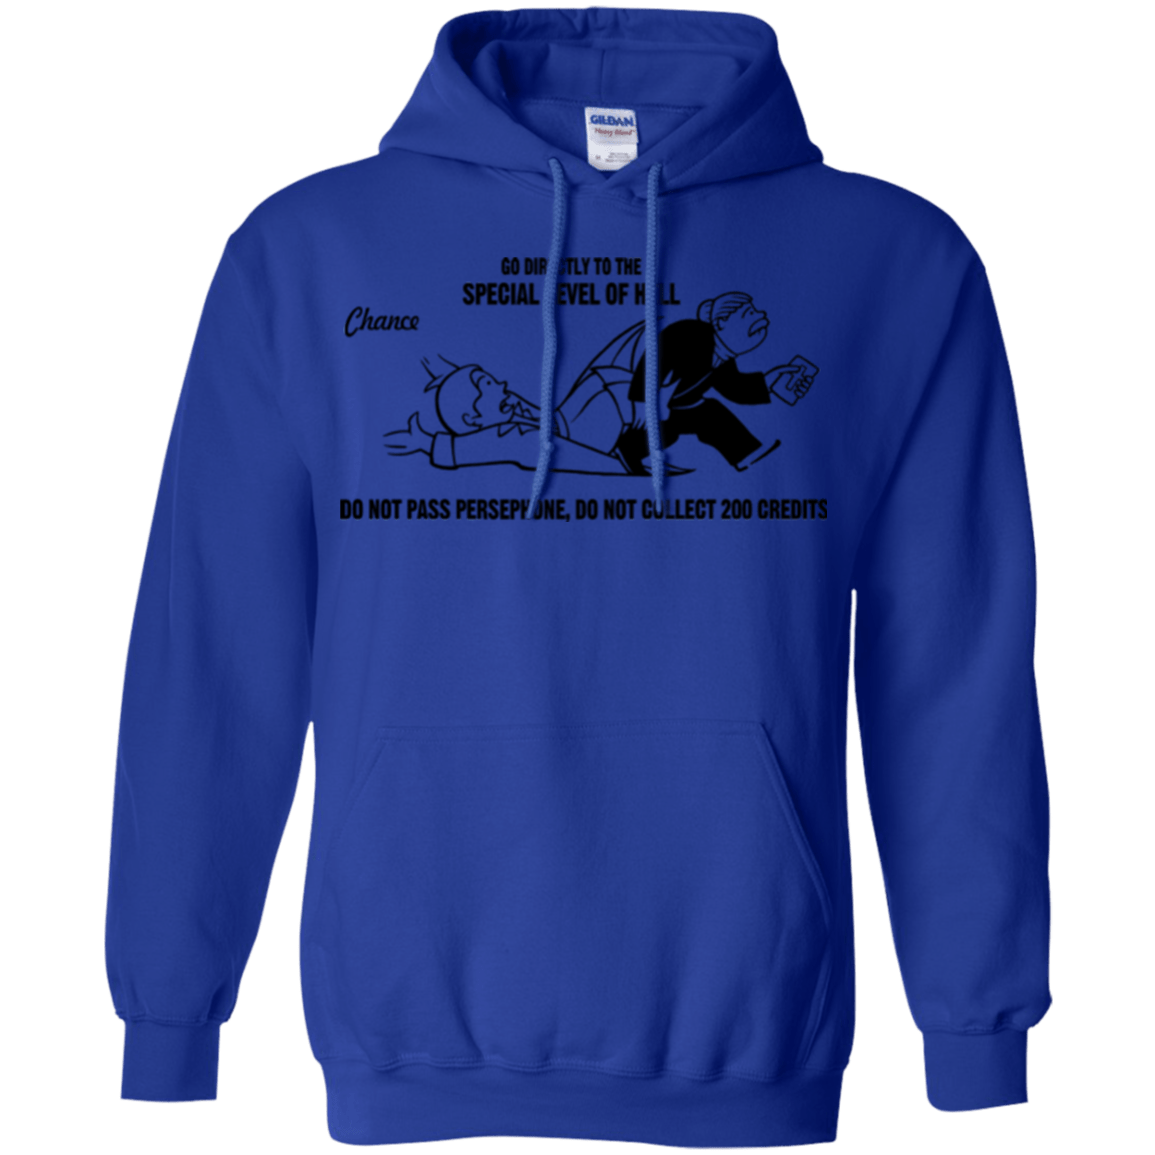 Sweatshirts Royal / Small Special Level of Hell Pullover Hoodie